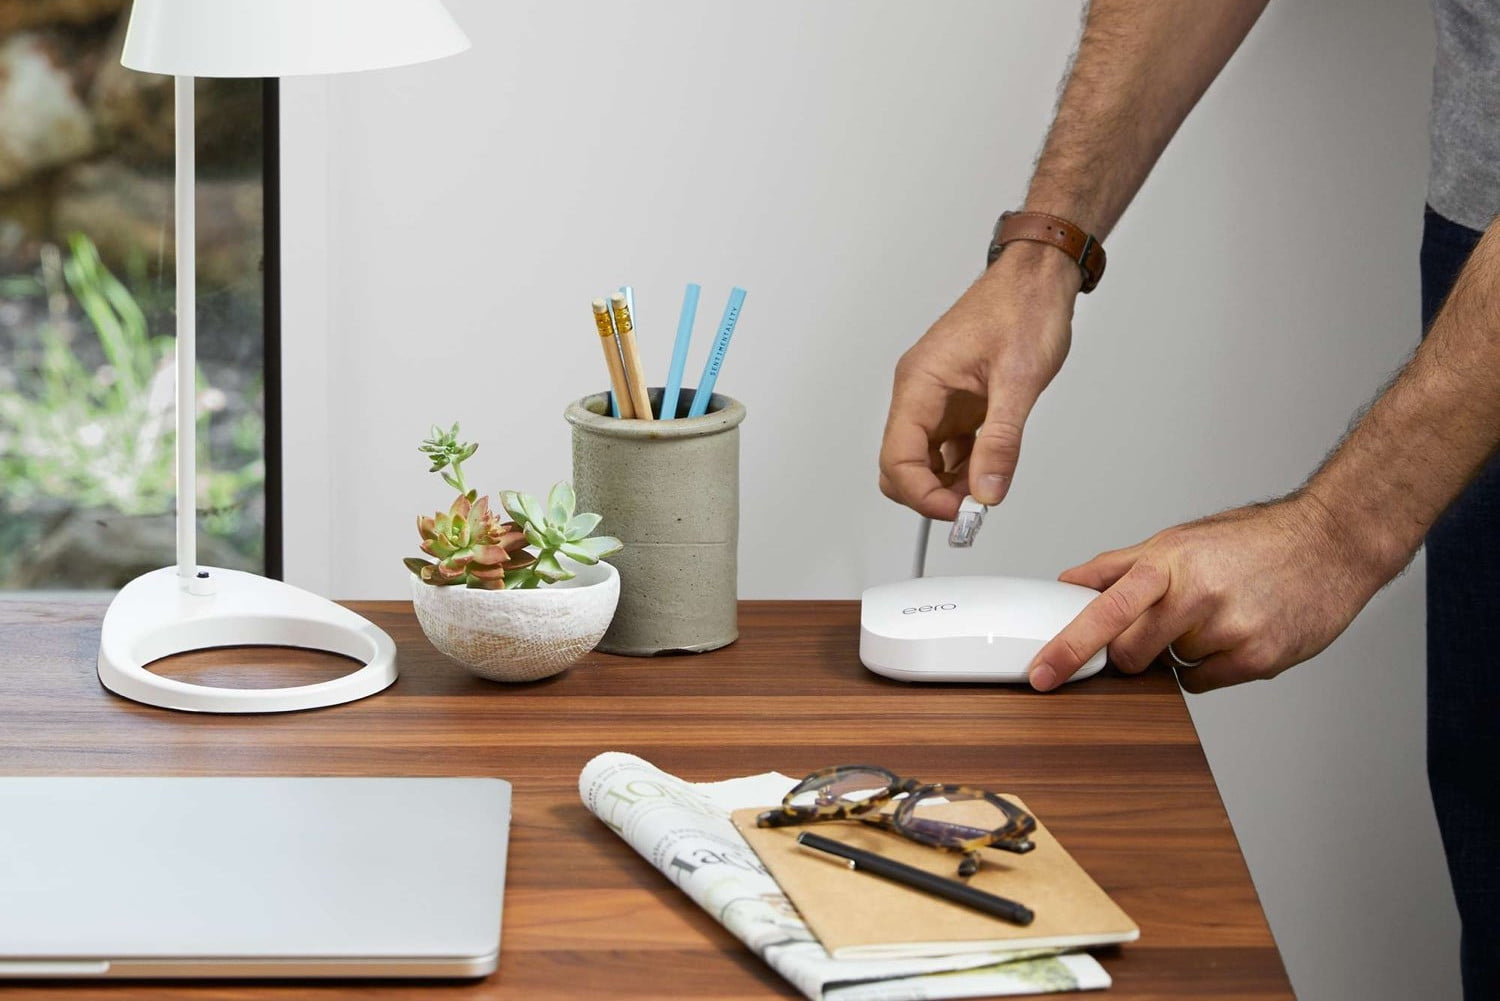 amazon drops prices for eero home mesh wi fi systems wifi system  1 pro beacon 5